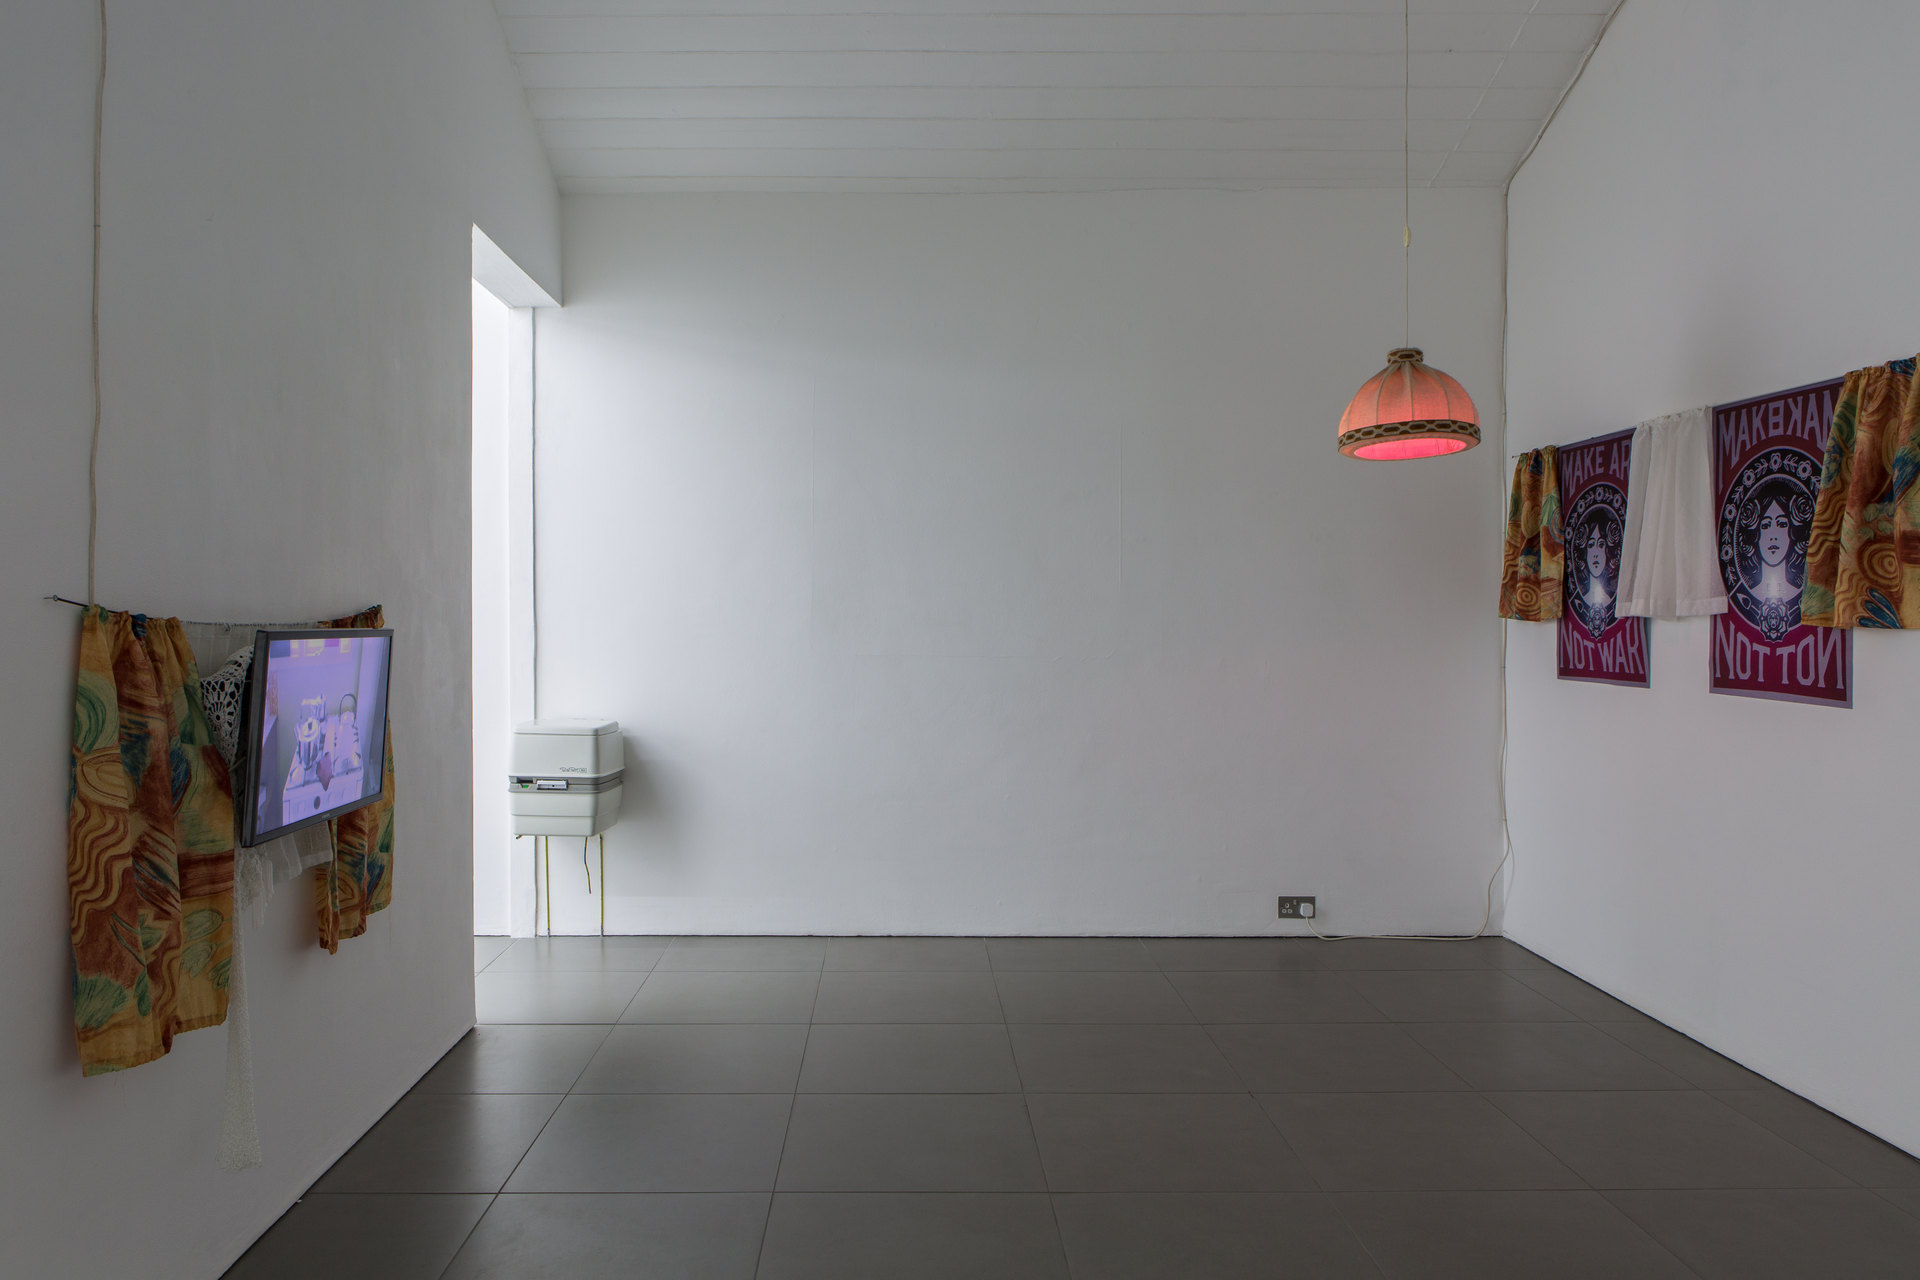 Nancy Halt 'On life on top of another life', 2018, No, No, No, No, 2018 Cell Project Space